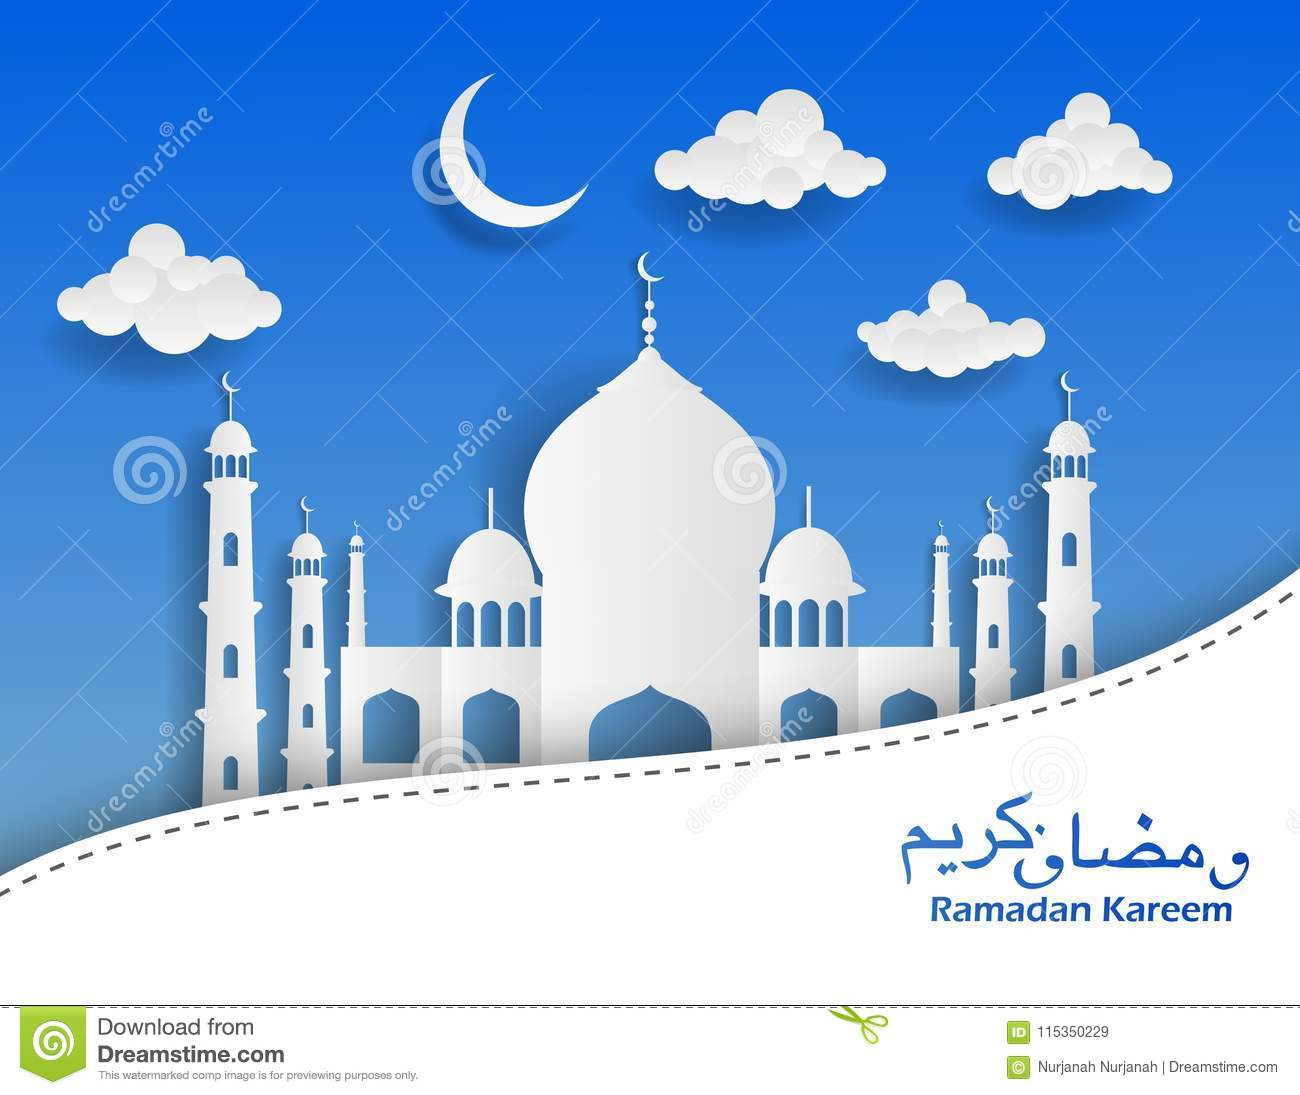 Ramadan Kareem Greeting Card Islamic Stock Vector Illustration Of